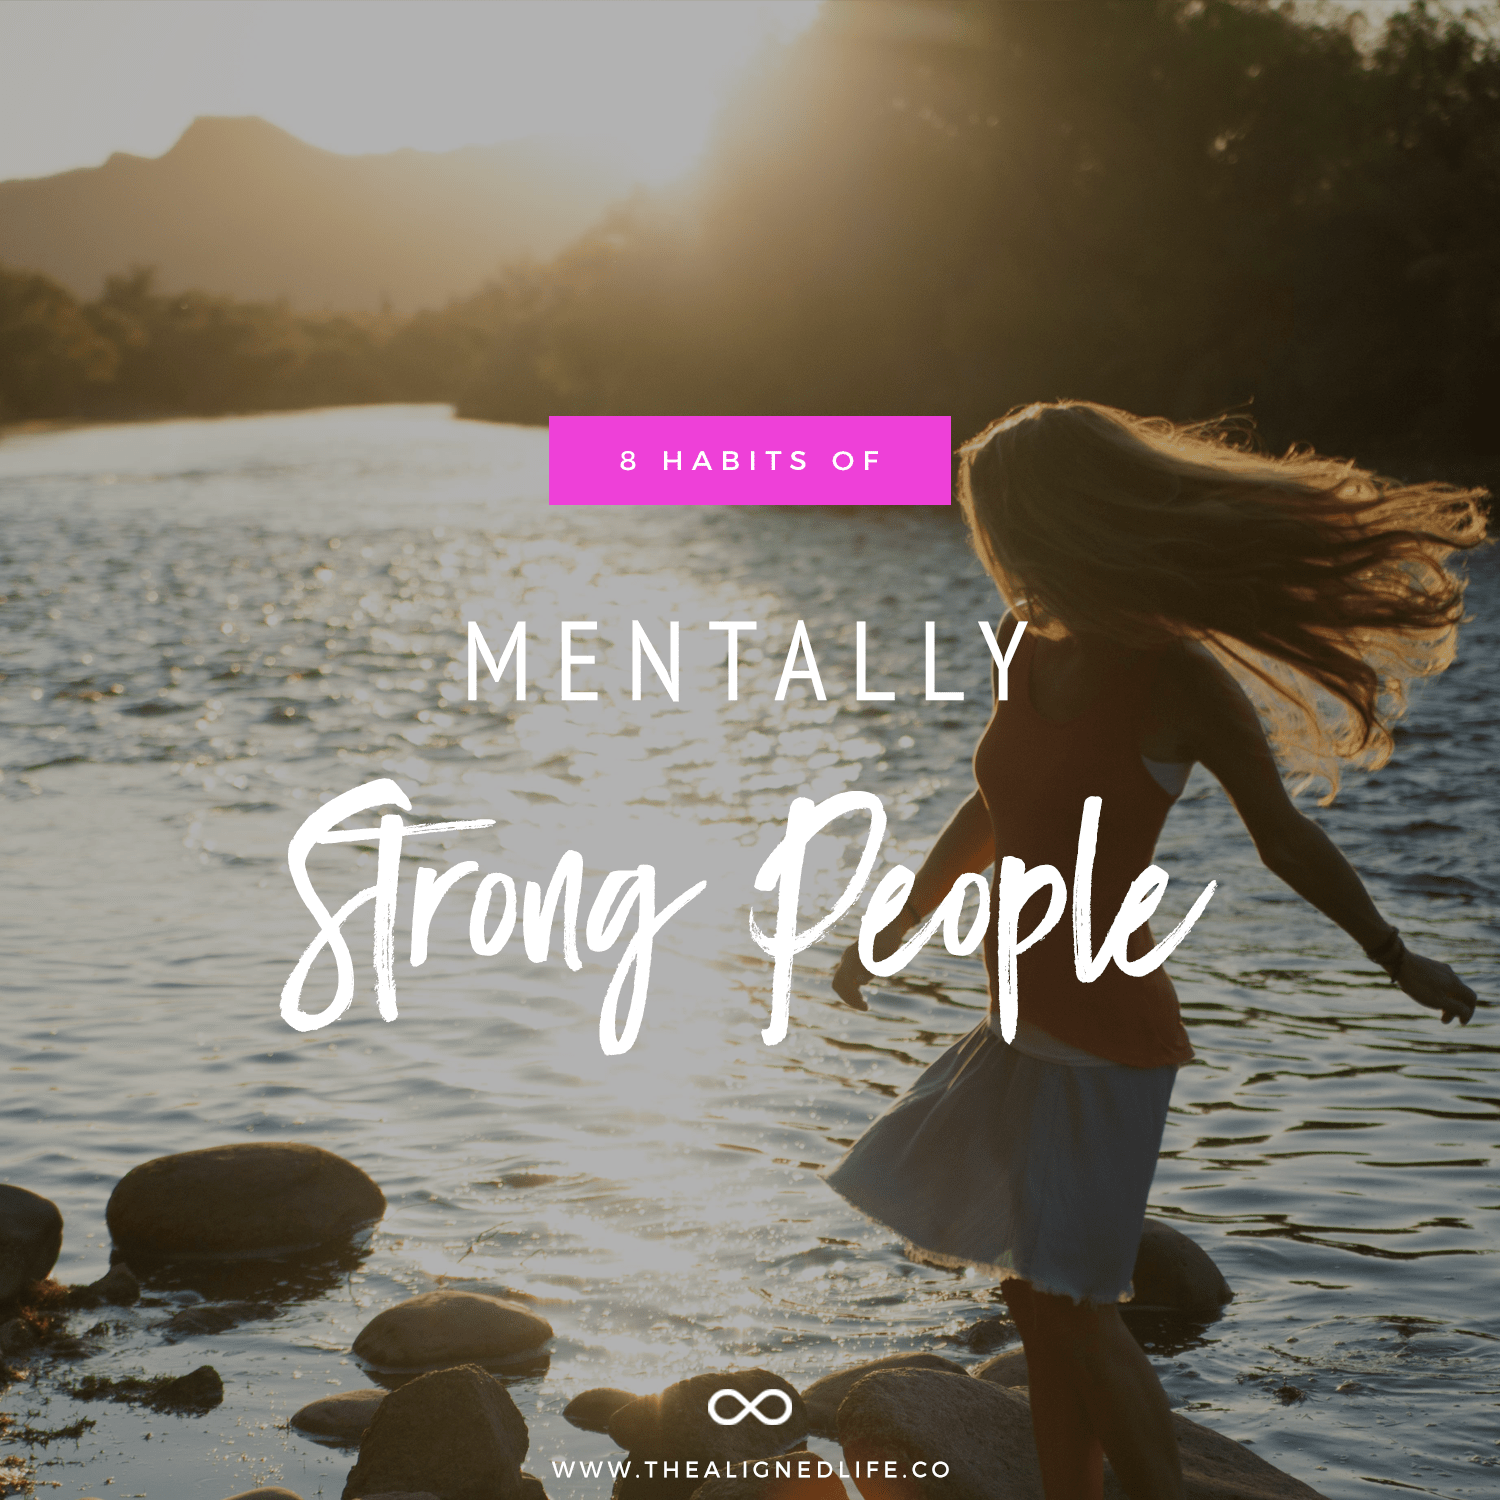 8 Habits Of Mentally Strong People